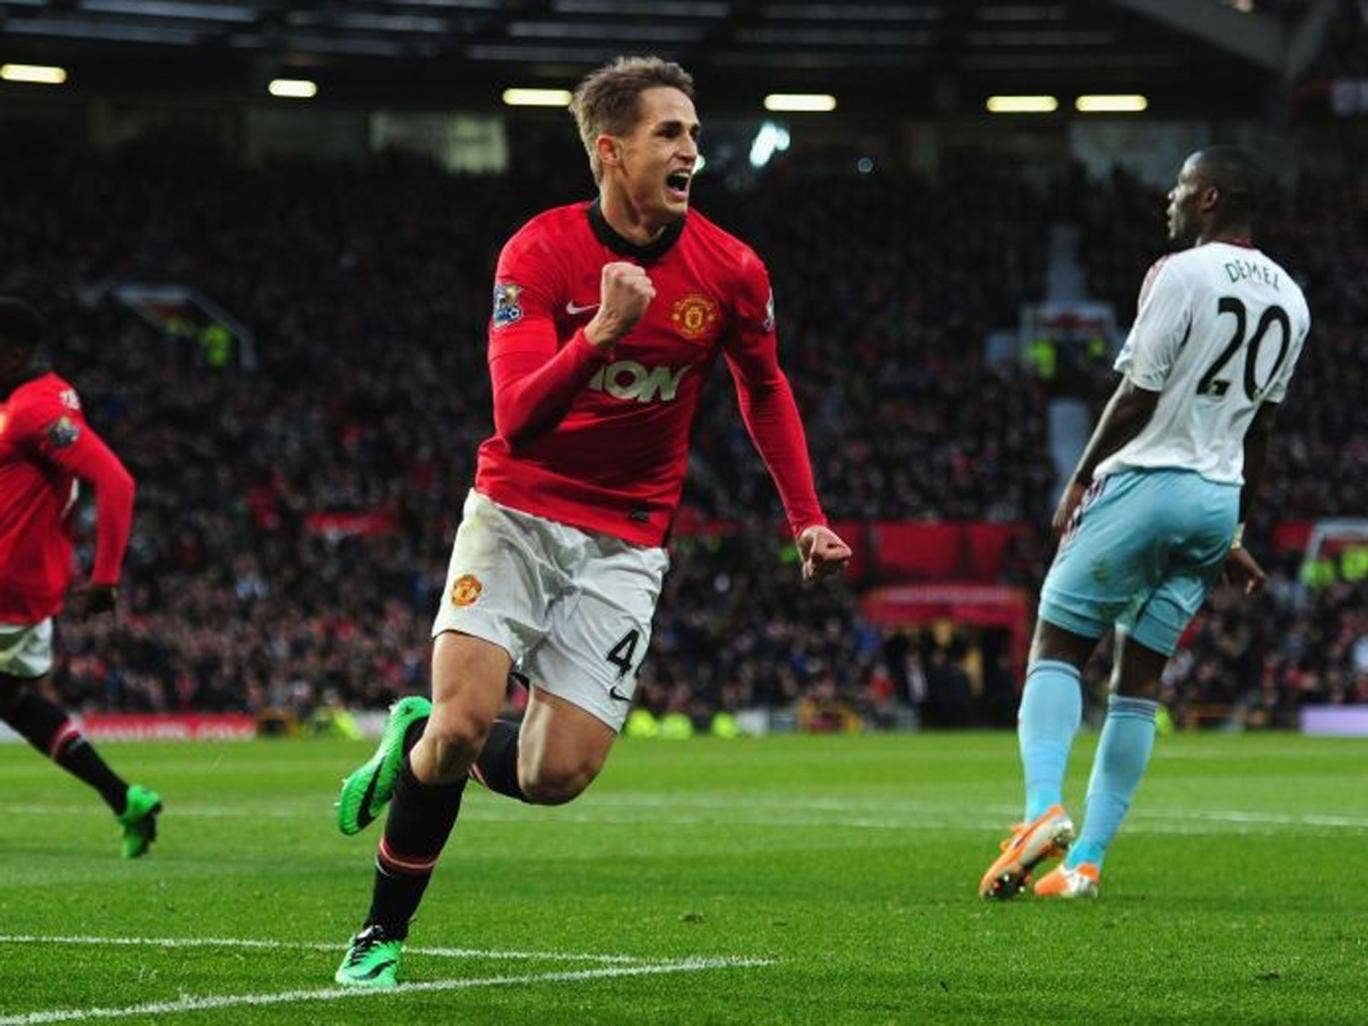 Mourinho's words will at the very least place further focus on the 18-year-old Belgium-born winger Adnan Januzaj